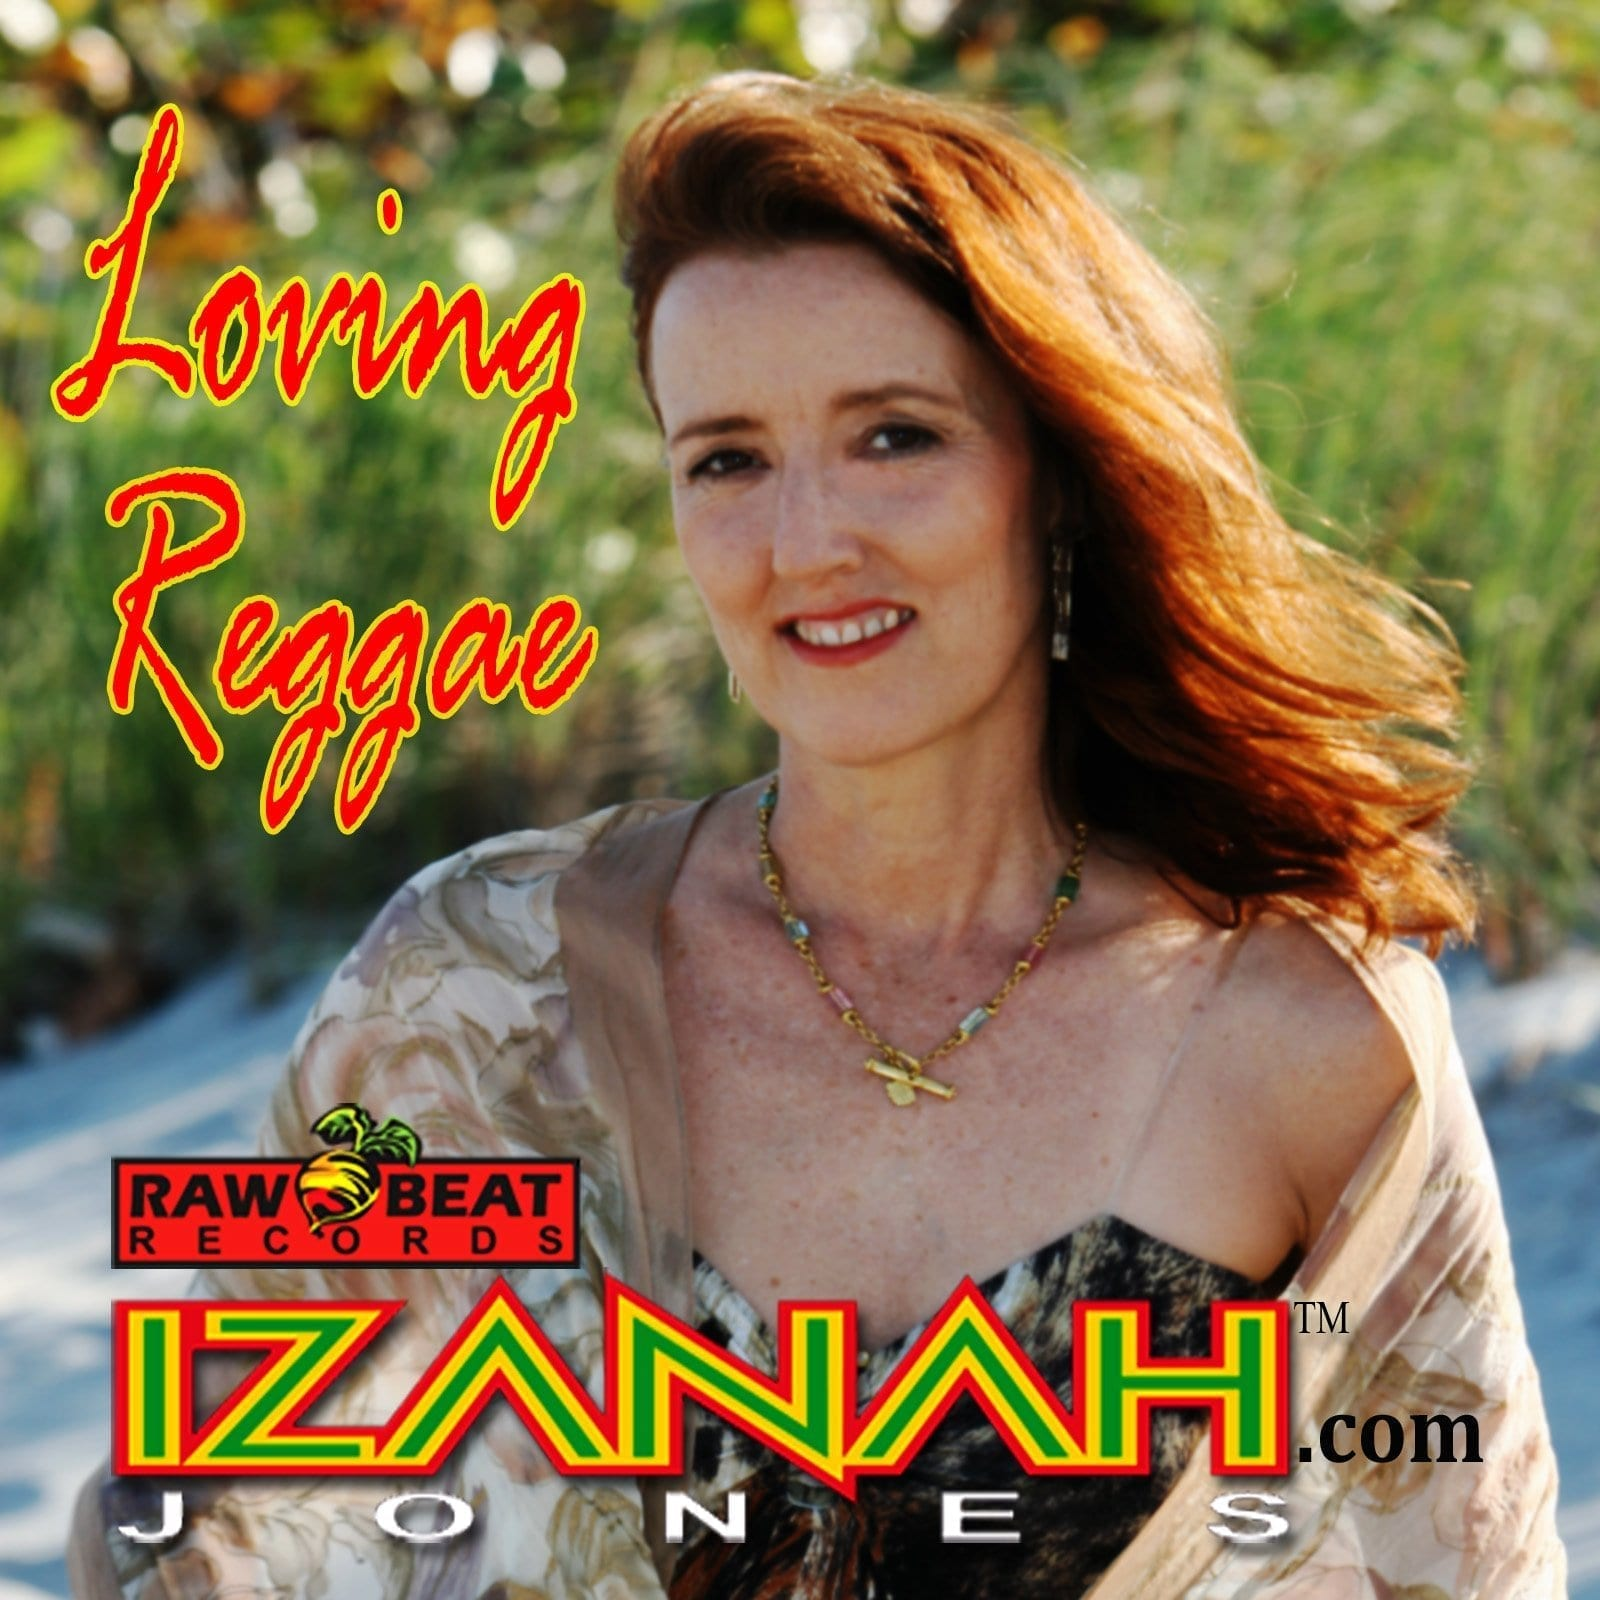 Loving-Reggae-COVER-CD-retouched-2